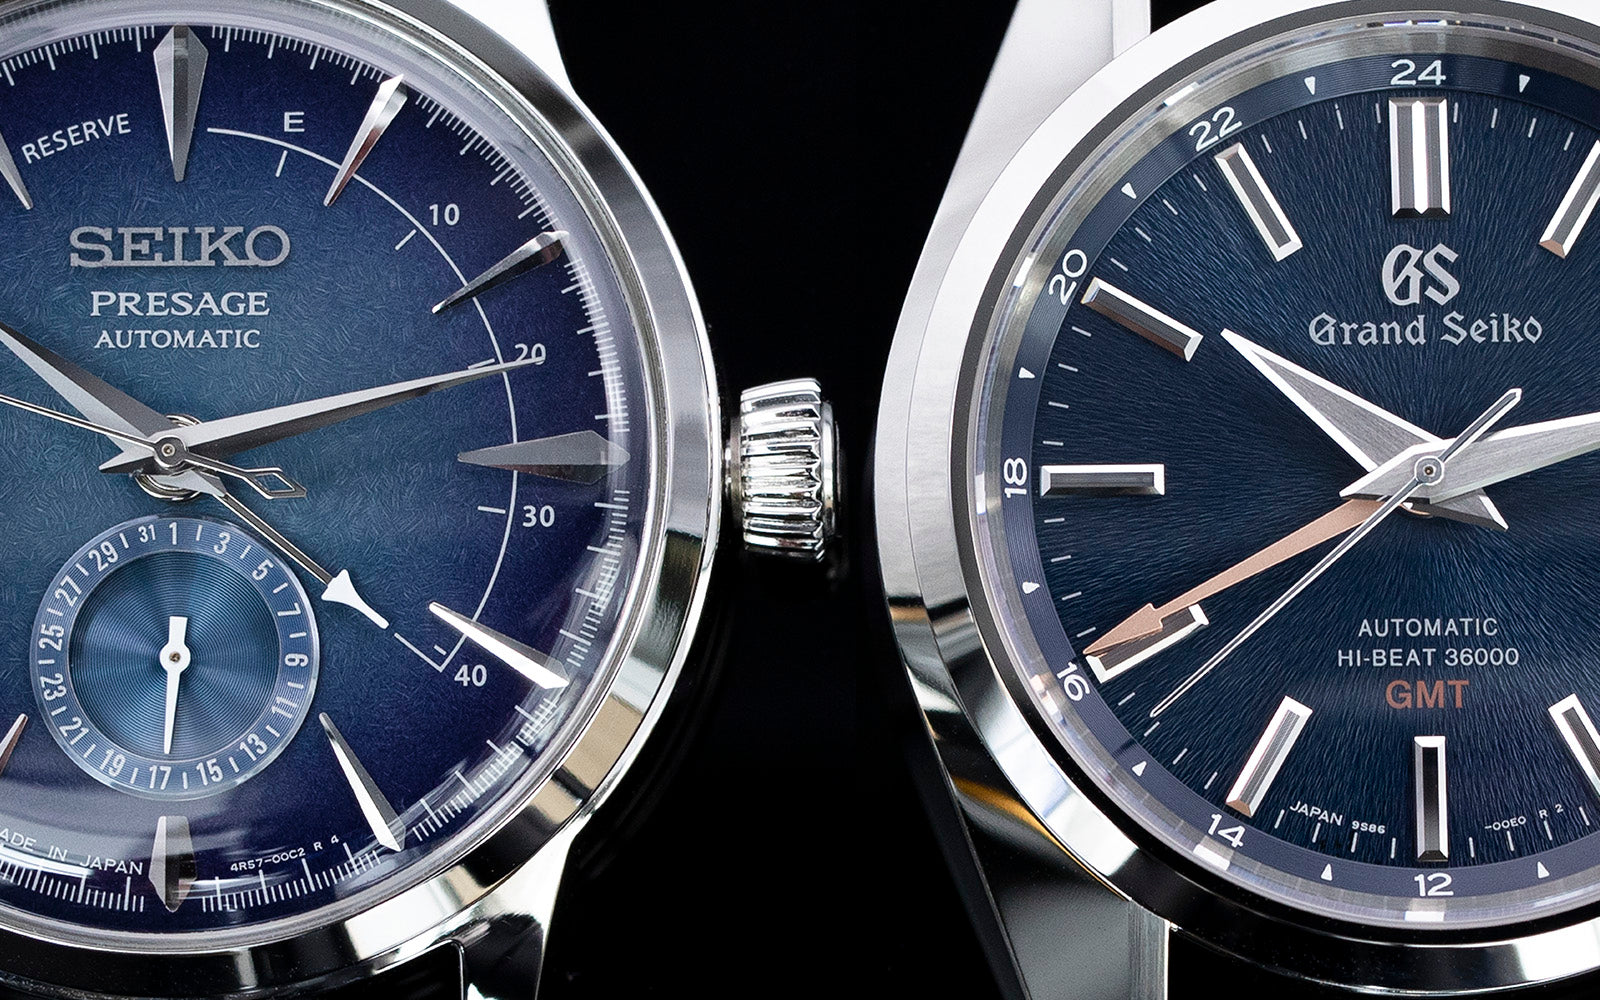 2 watches, Seiko Presage Vs Grand Seiko GMT SBGJ235 Hi-Beat